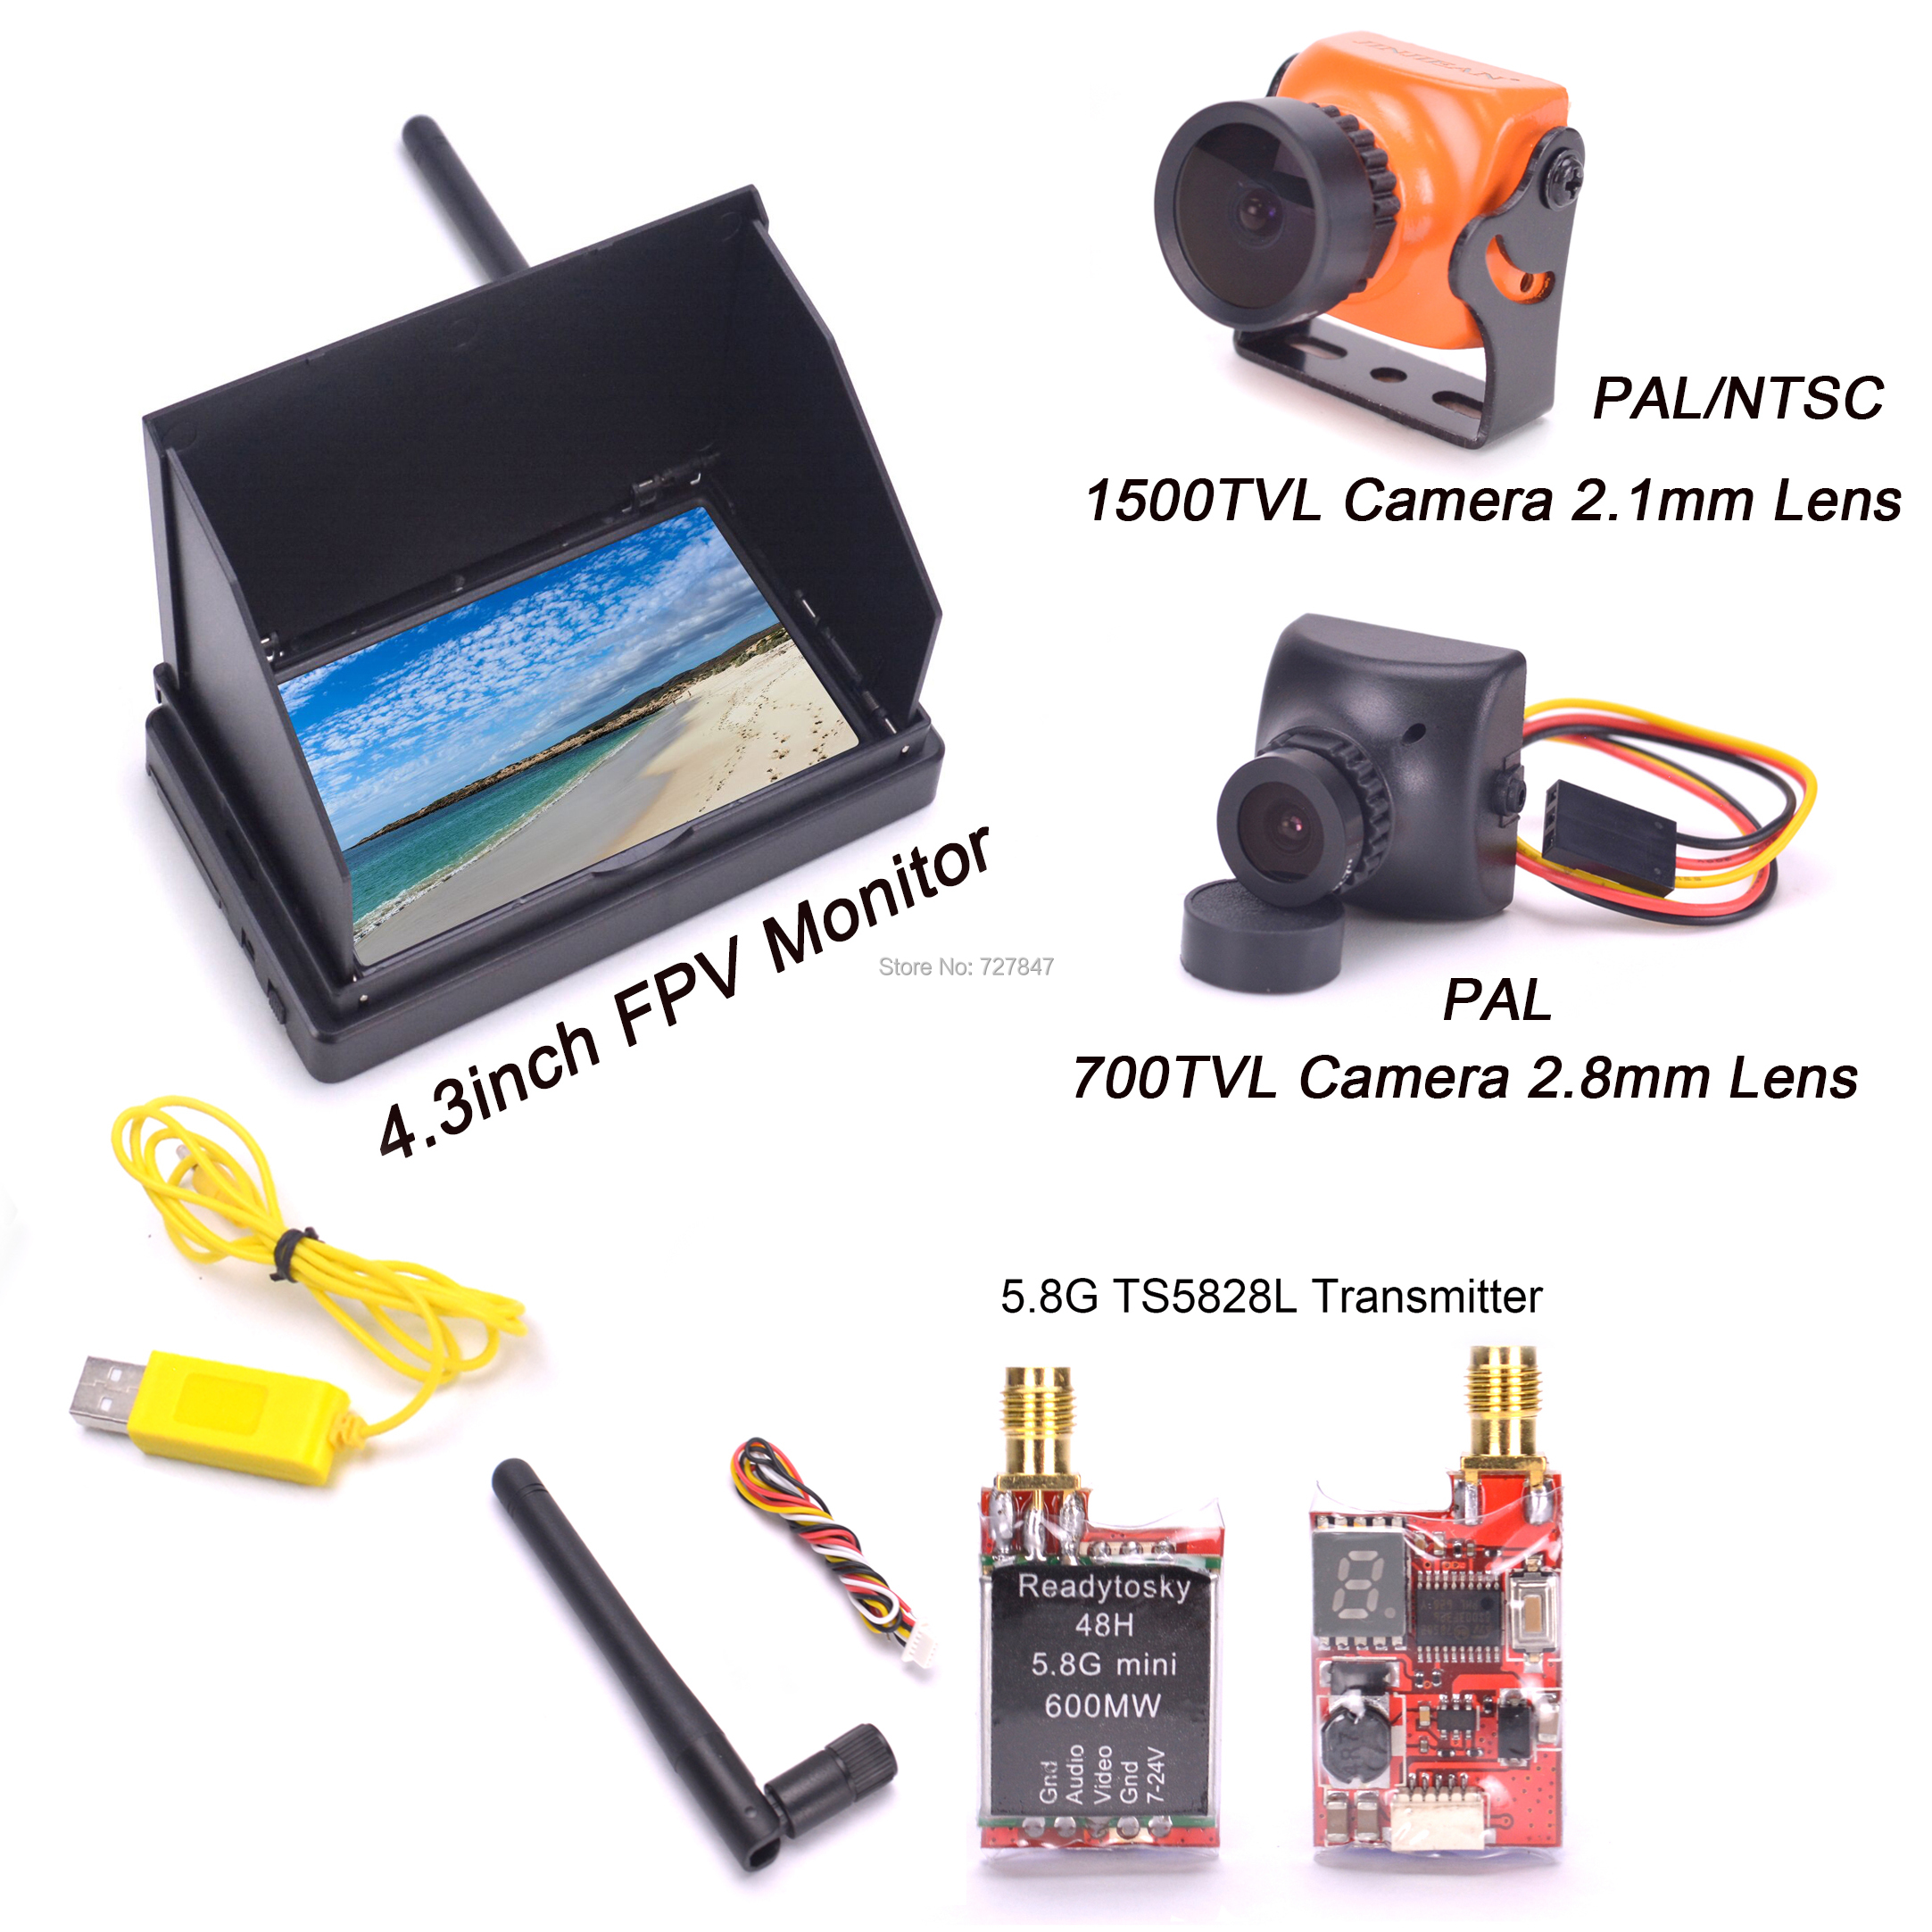 4.3inch 48CH LCD 480 X 22 Wireless Receiver Monitor Built-in Battery TS5828L 48CH 600mW 700TVL / 1500TVL Camera For FPV Drone